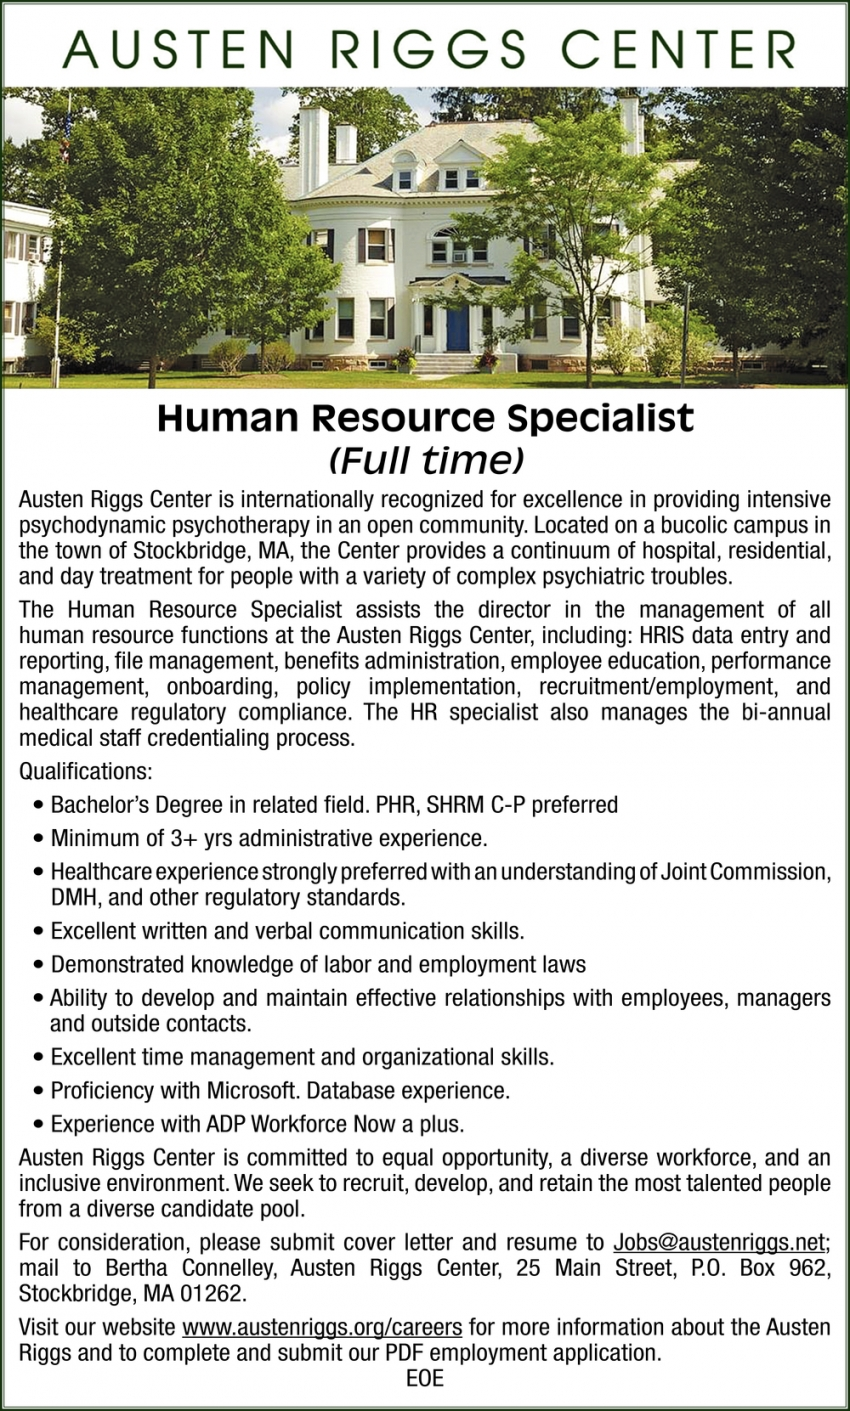 Human Resource Specialist